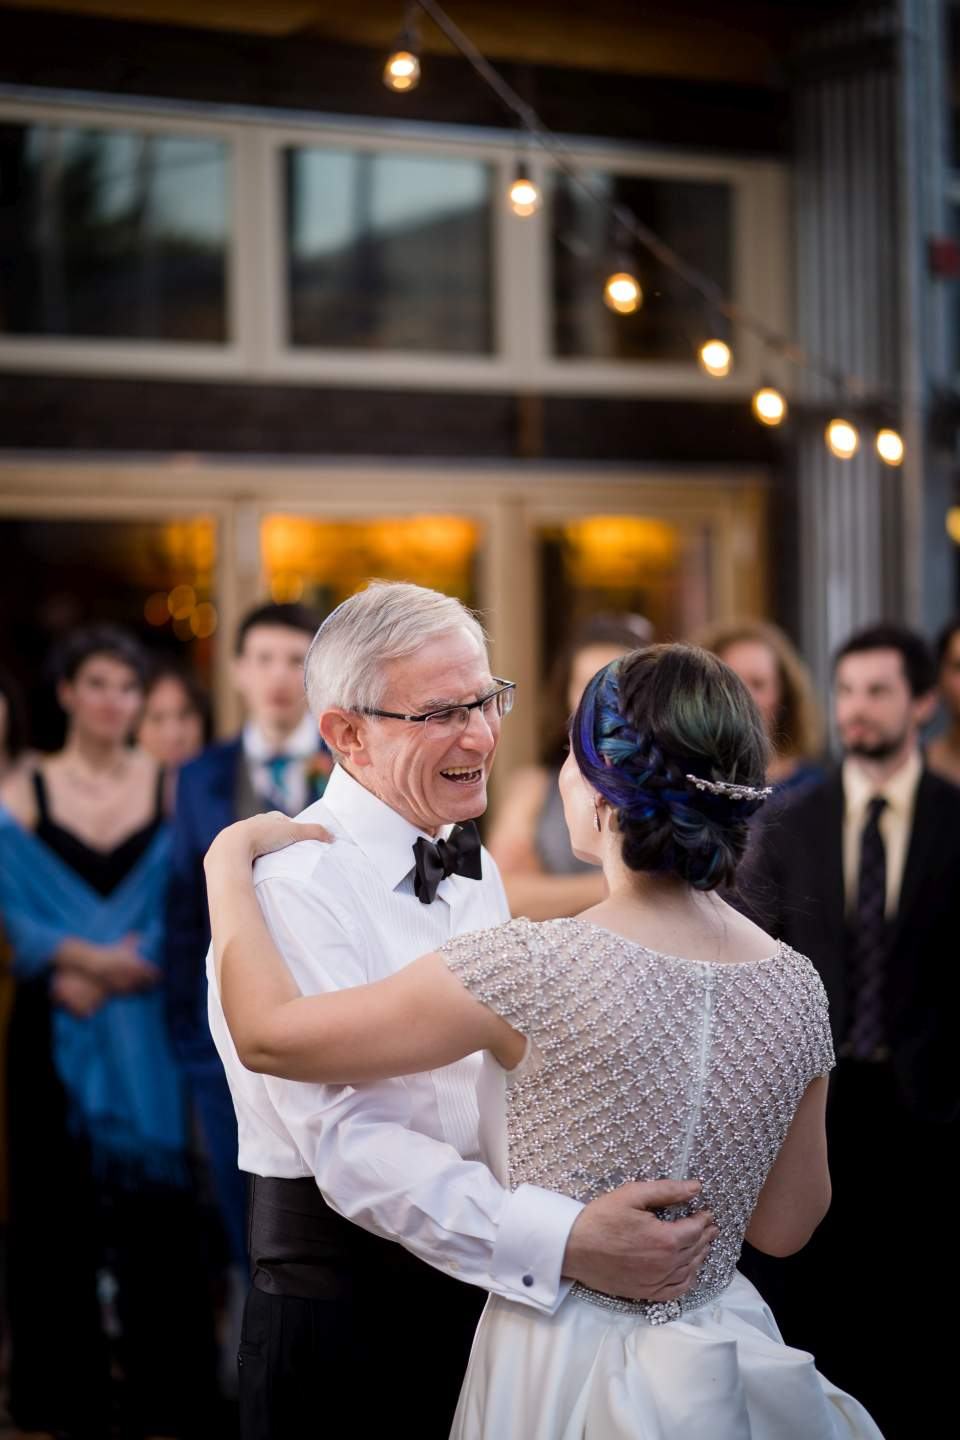 father daughter wedding special dance